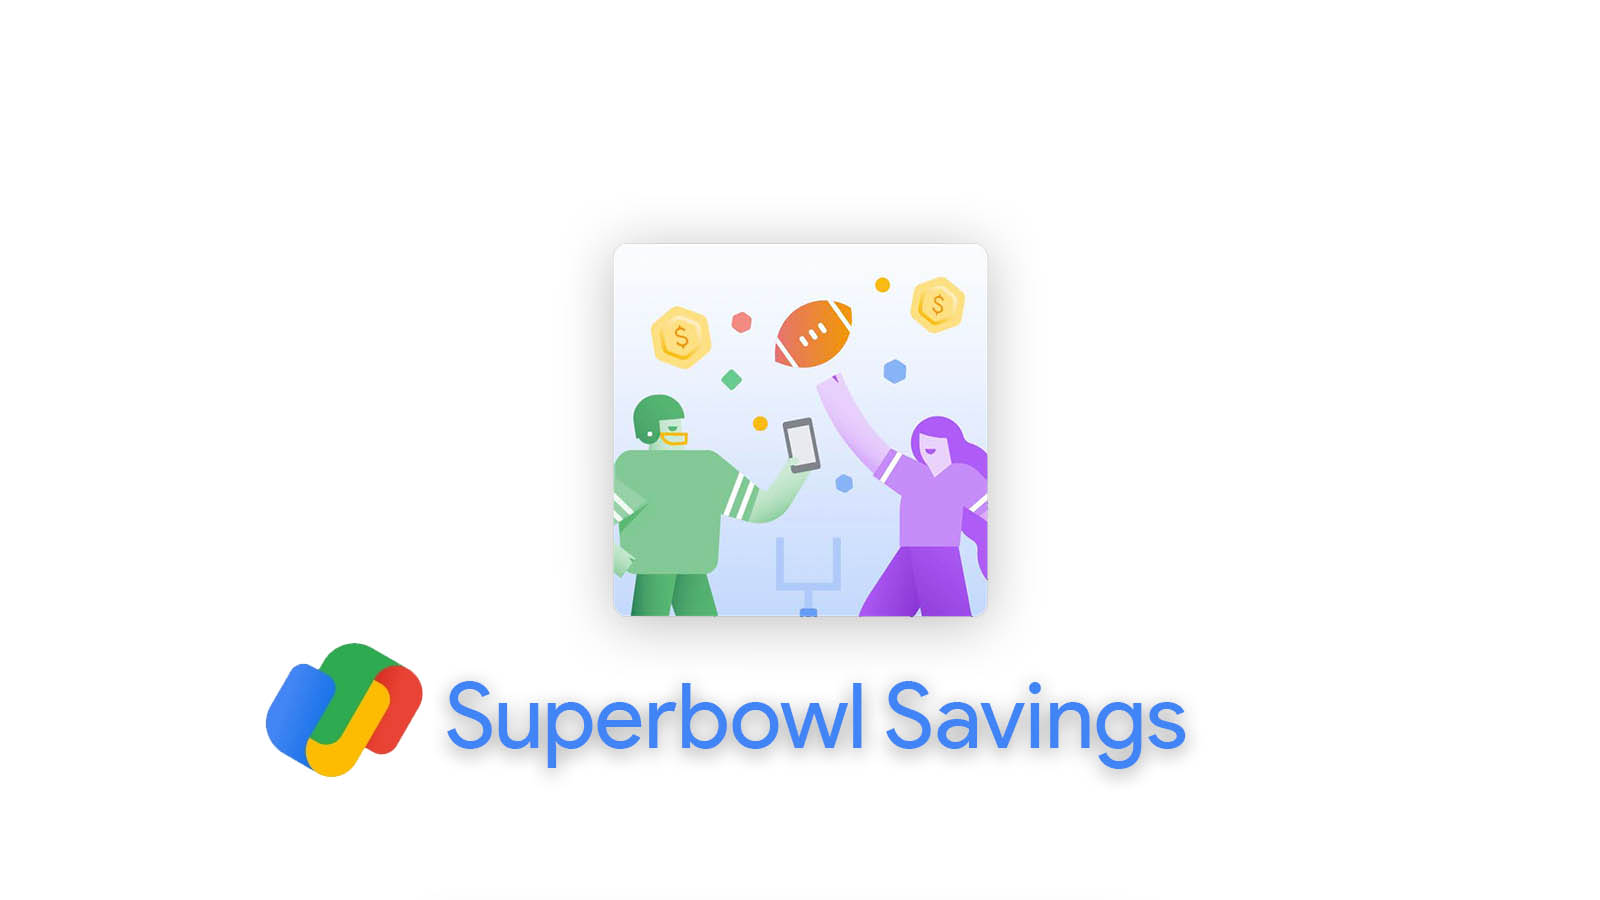 Google Pay will let you earn up to $55 during the Super Bowl by referring friends